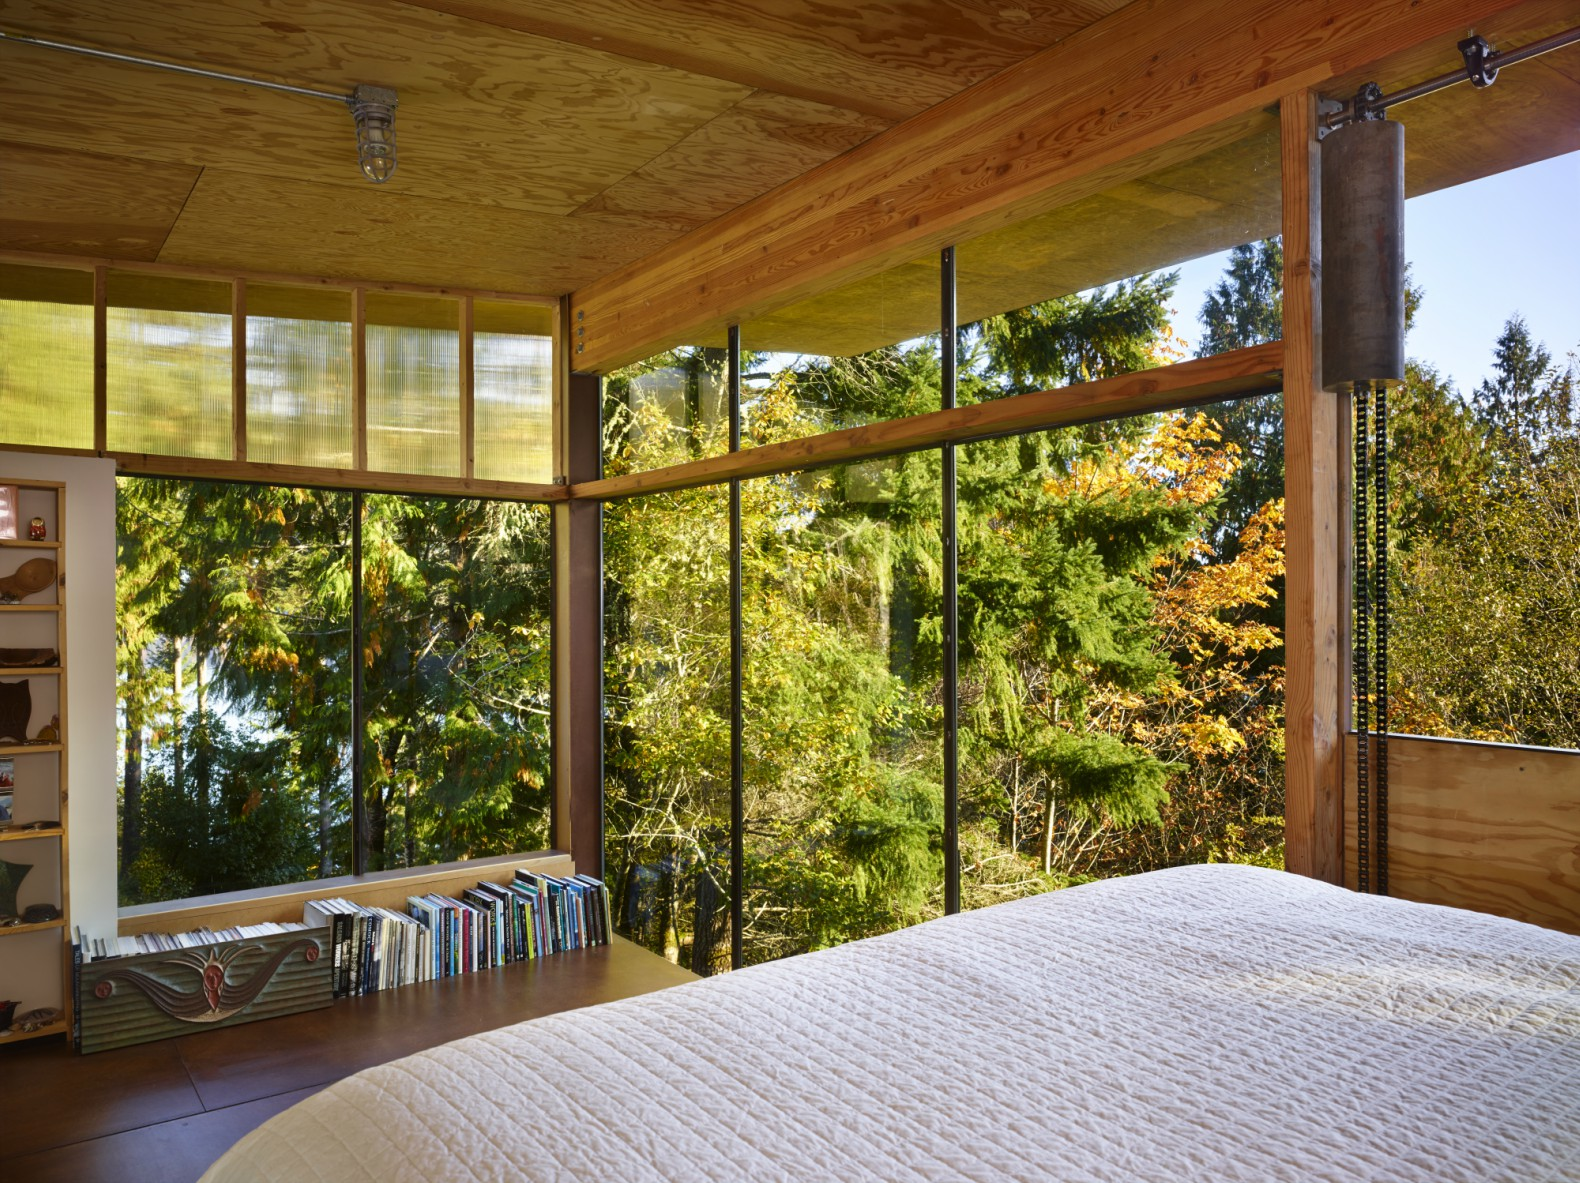 This Puget Sound eco cabin is made almost entirely from reclaimed materials